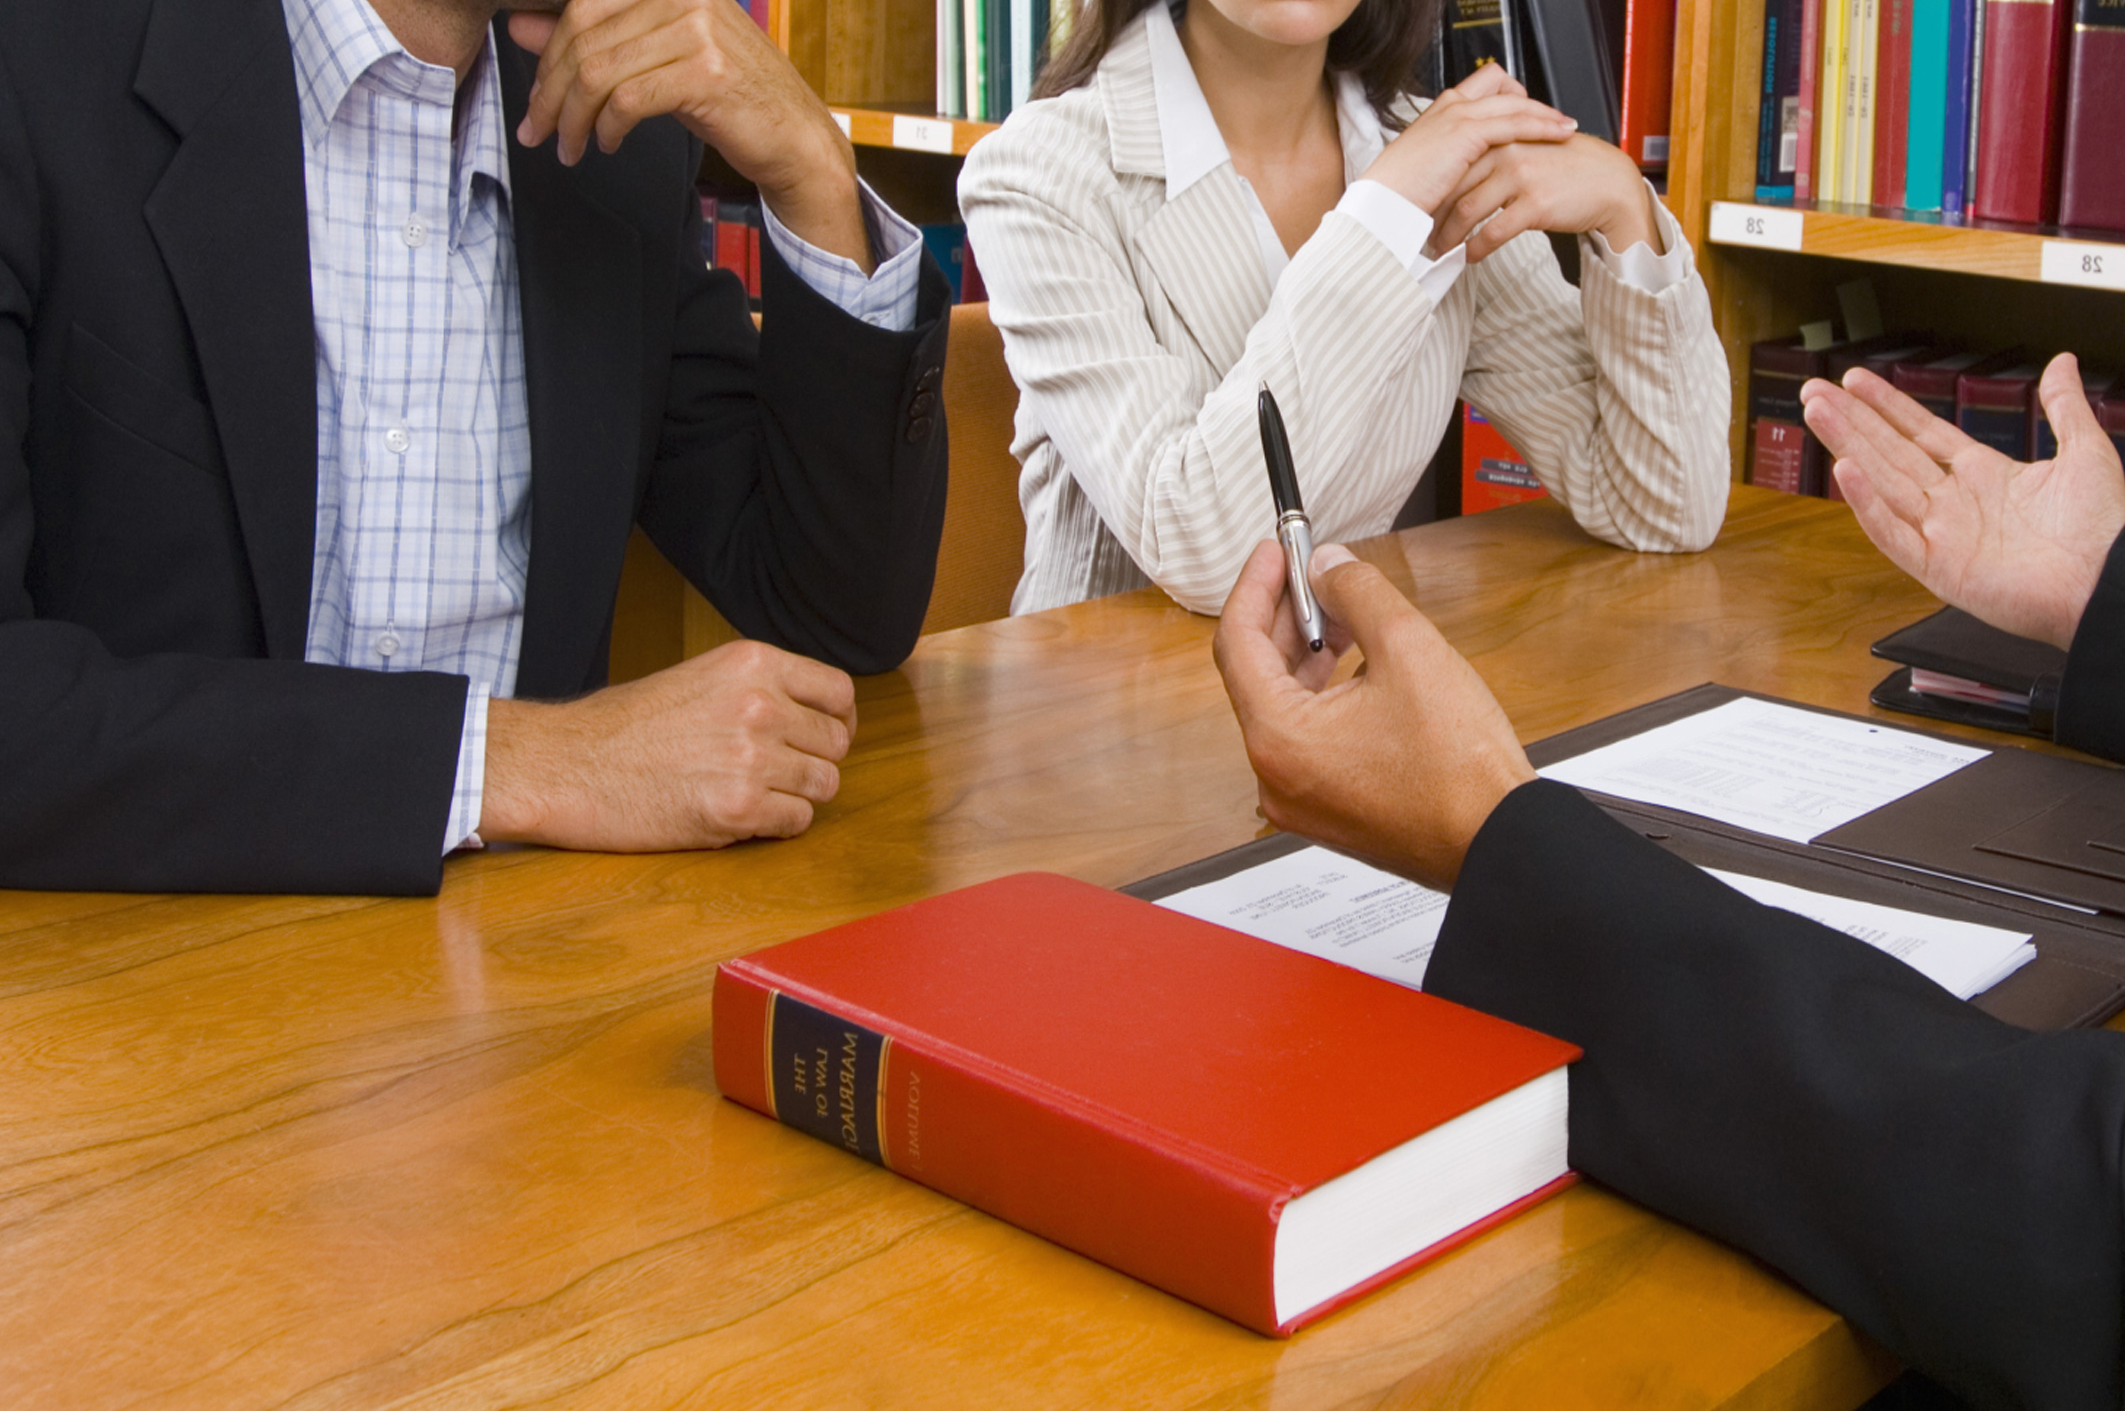 Divorce and Family Matters—How to Make Things Simpler and Logical